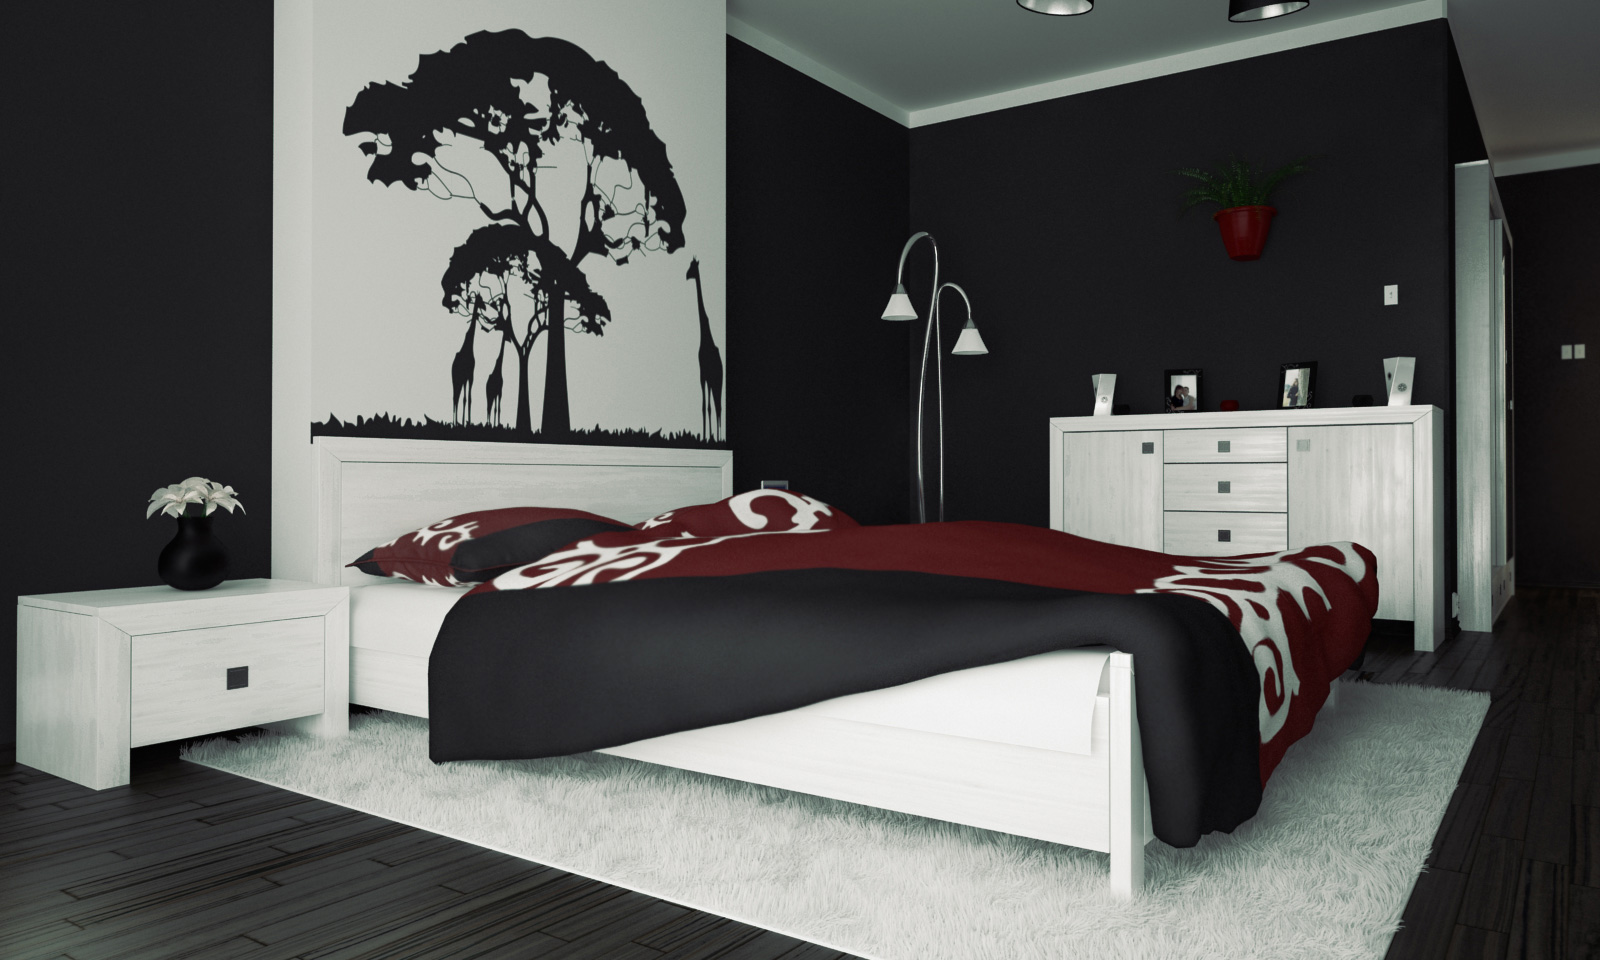 Merveilleux Interesting Black And White Mural Above Headboard Completing Black And White  Bedroom Interior Concept